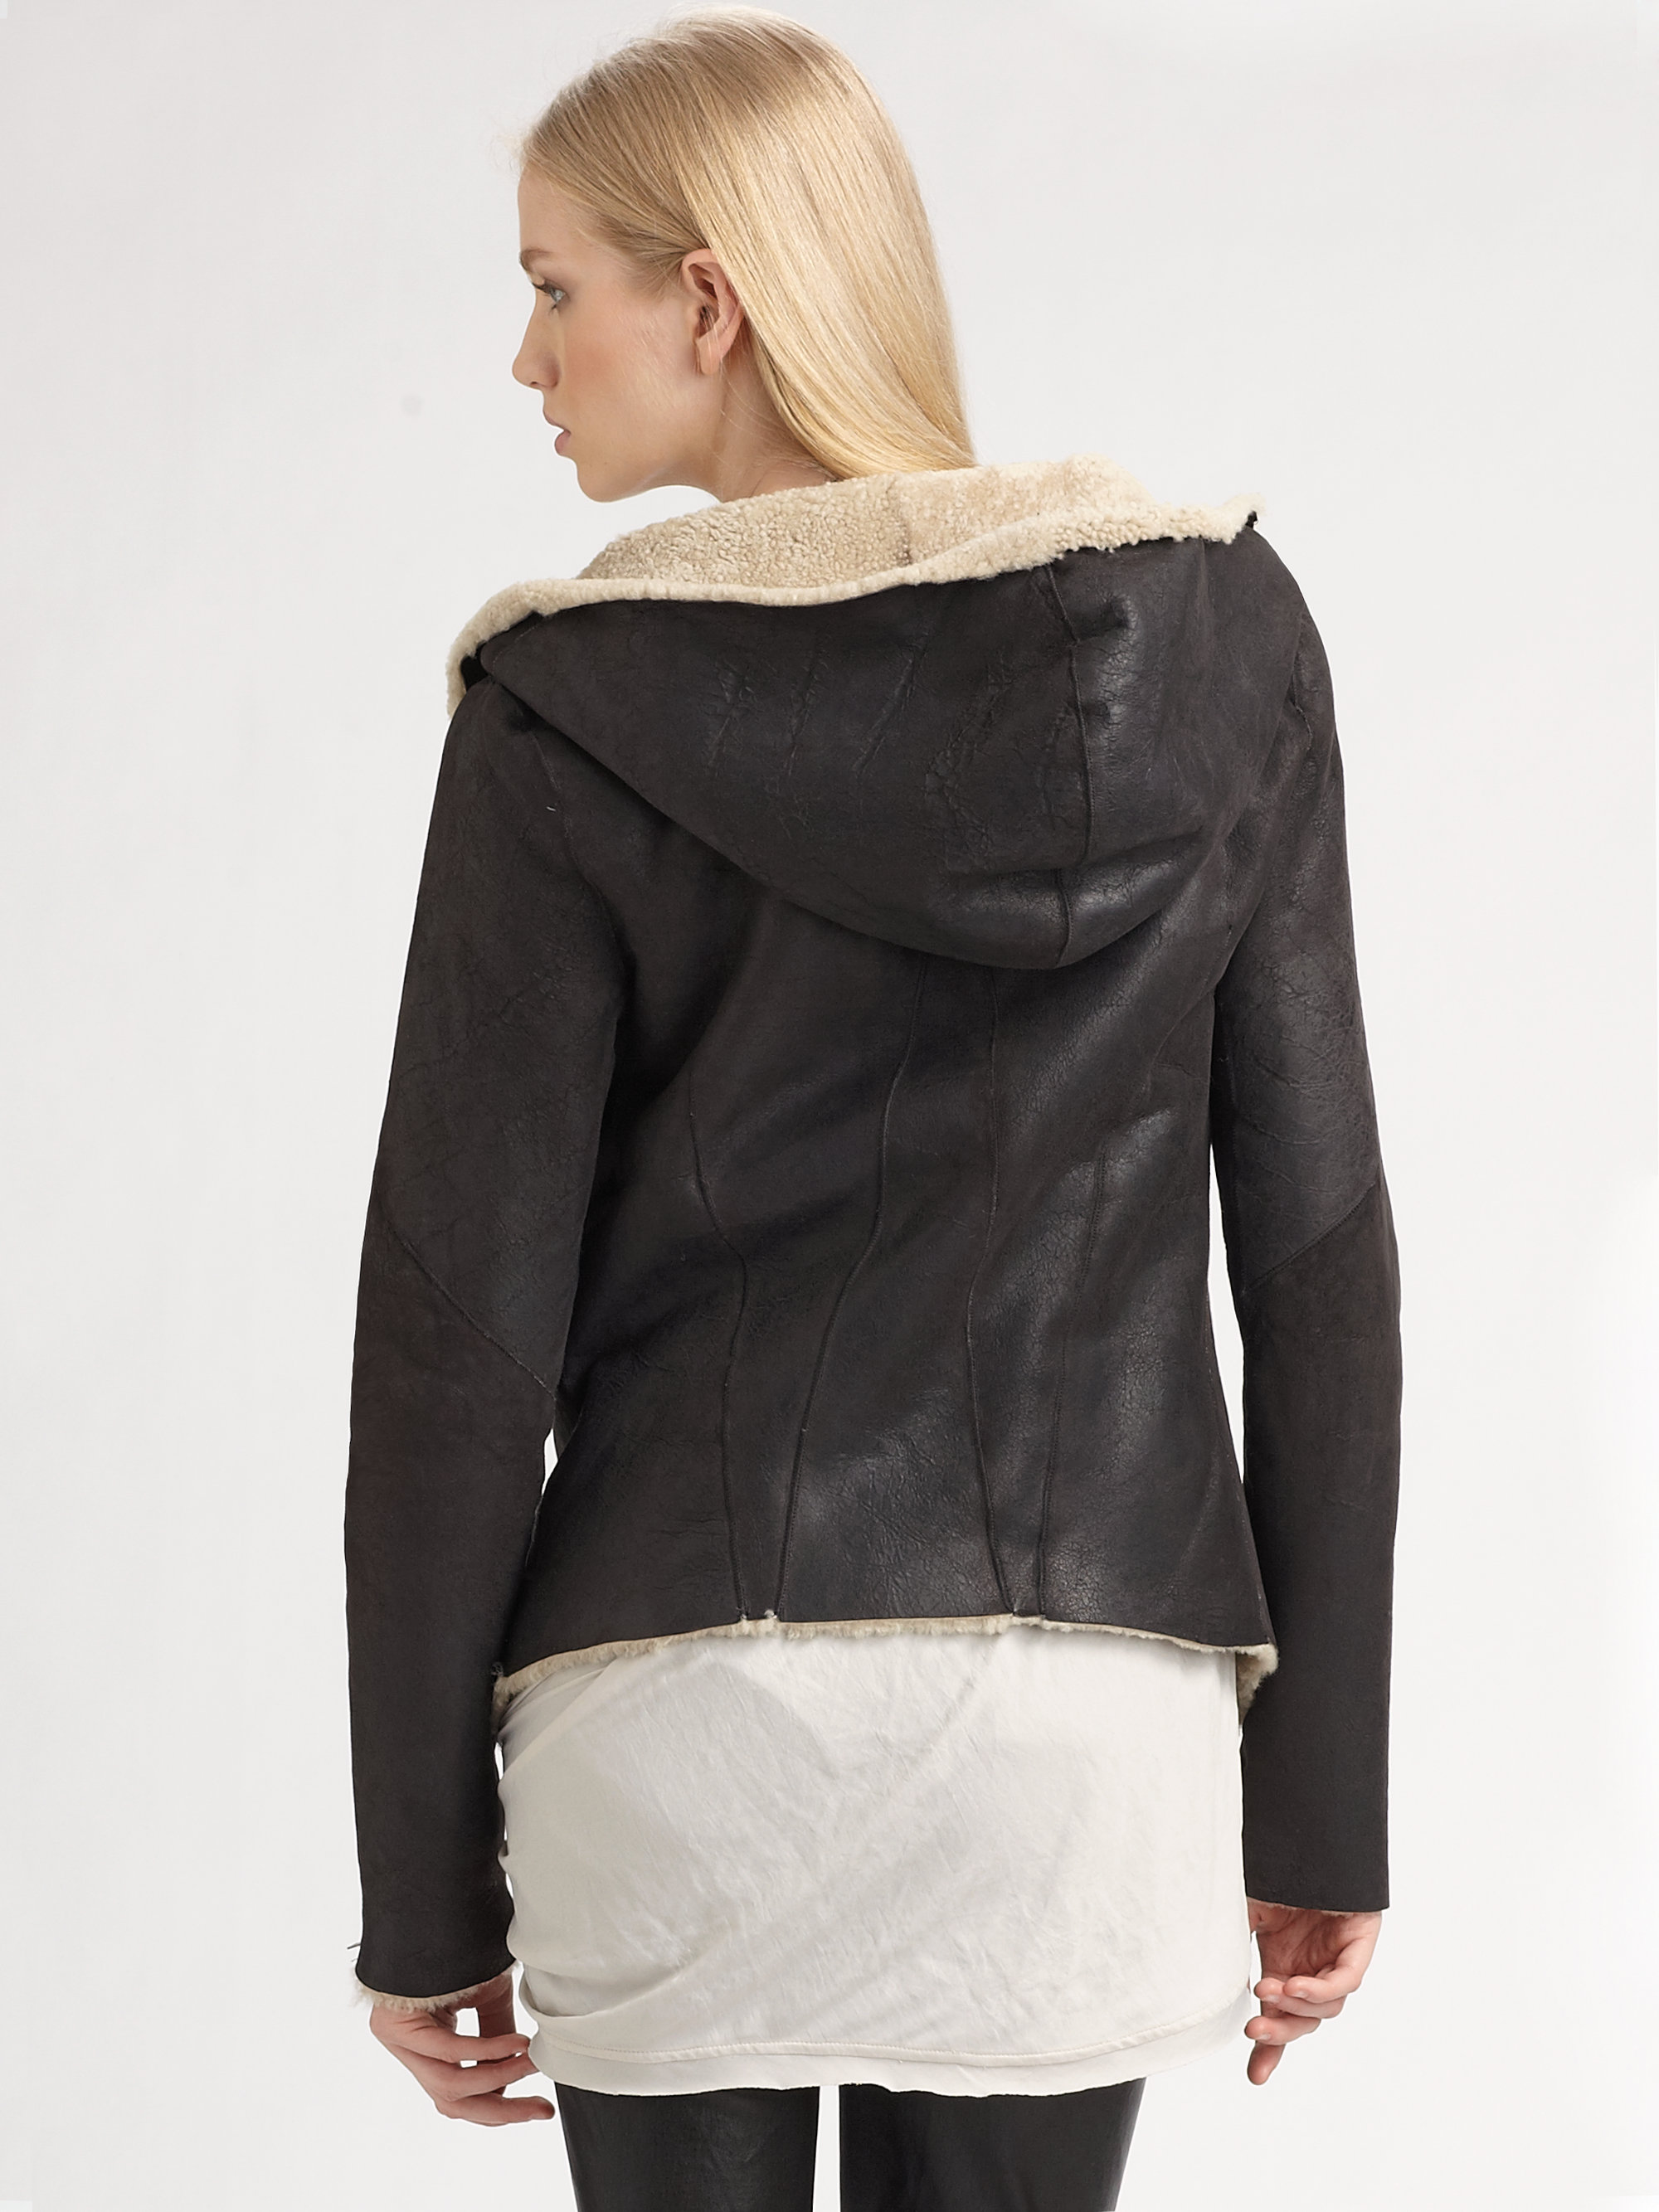 Helmut lang Hooded Shearling Leather Jacket in Black | Lyst